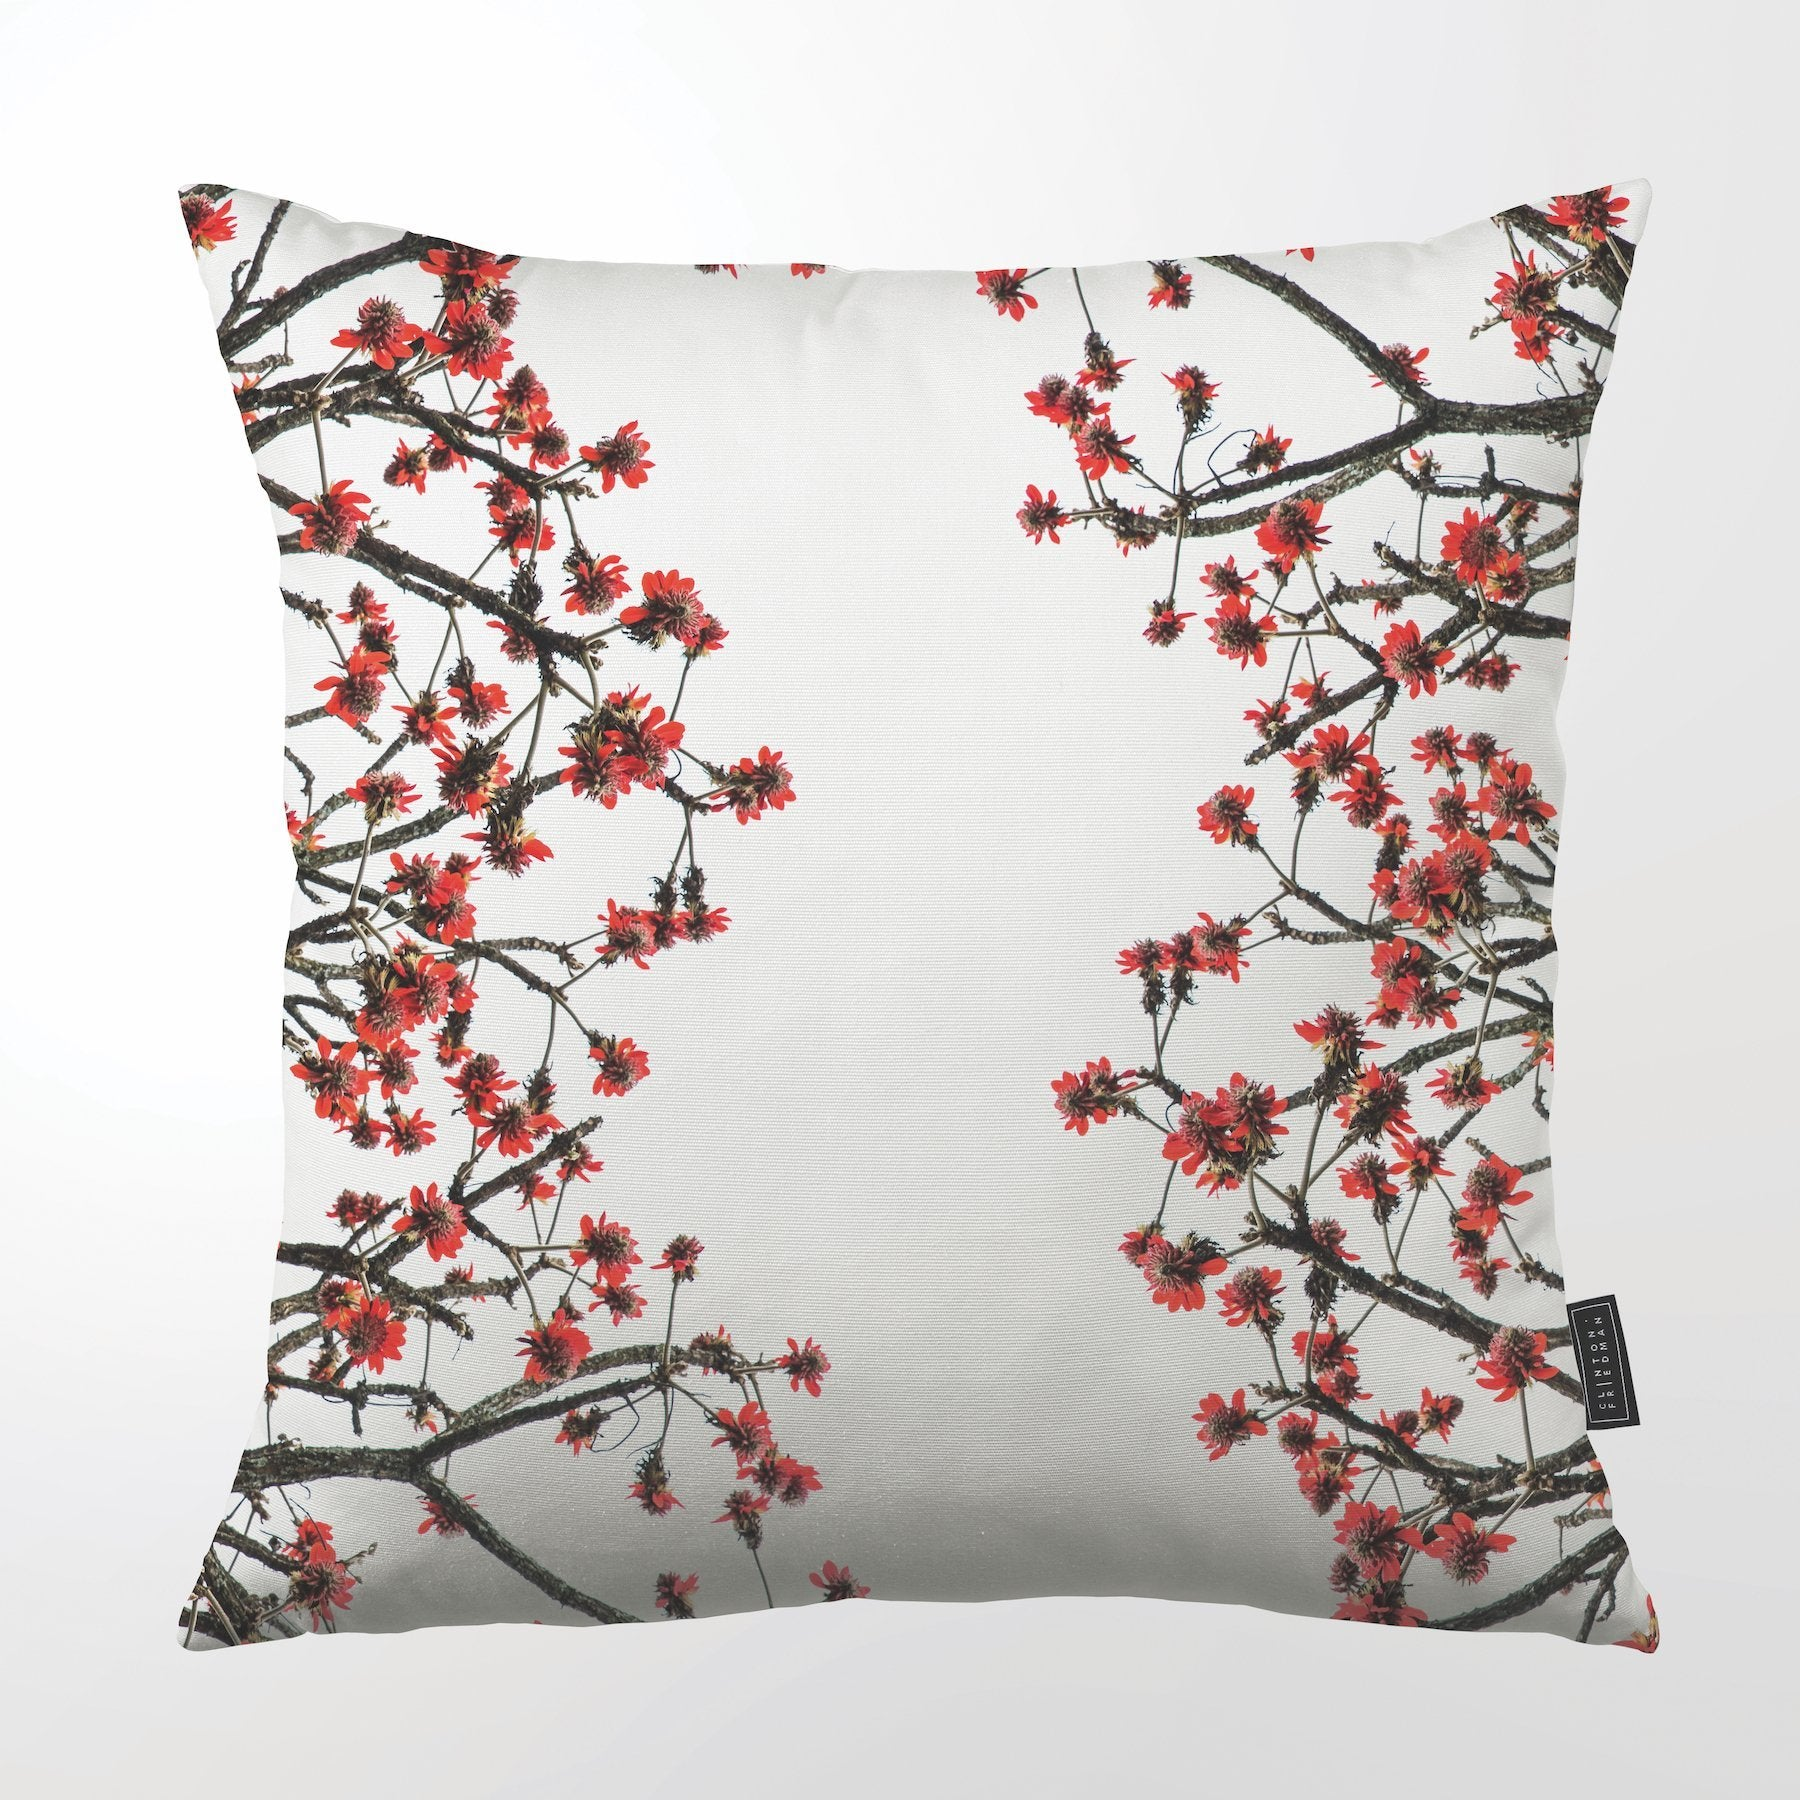 CLINTON FRIEDMAN US NEW YORK ERYTHRINA LATISSIMI THROW PILLOW